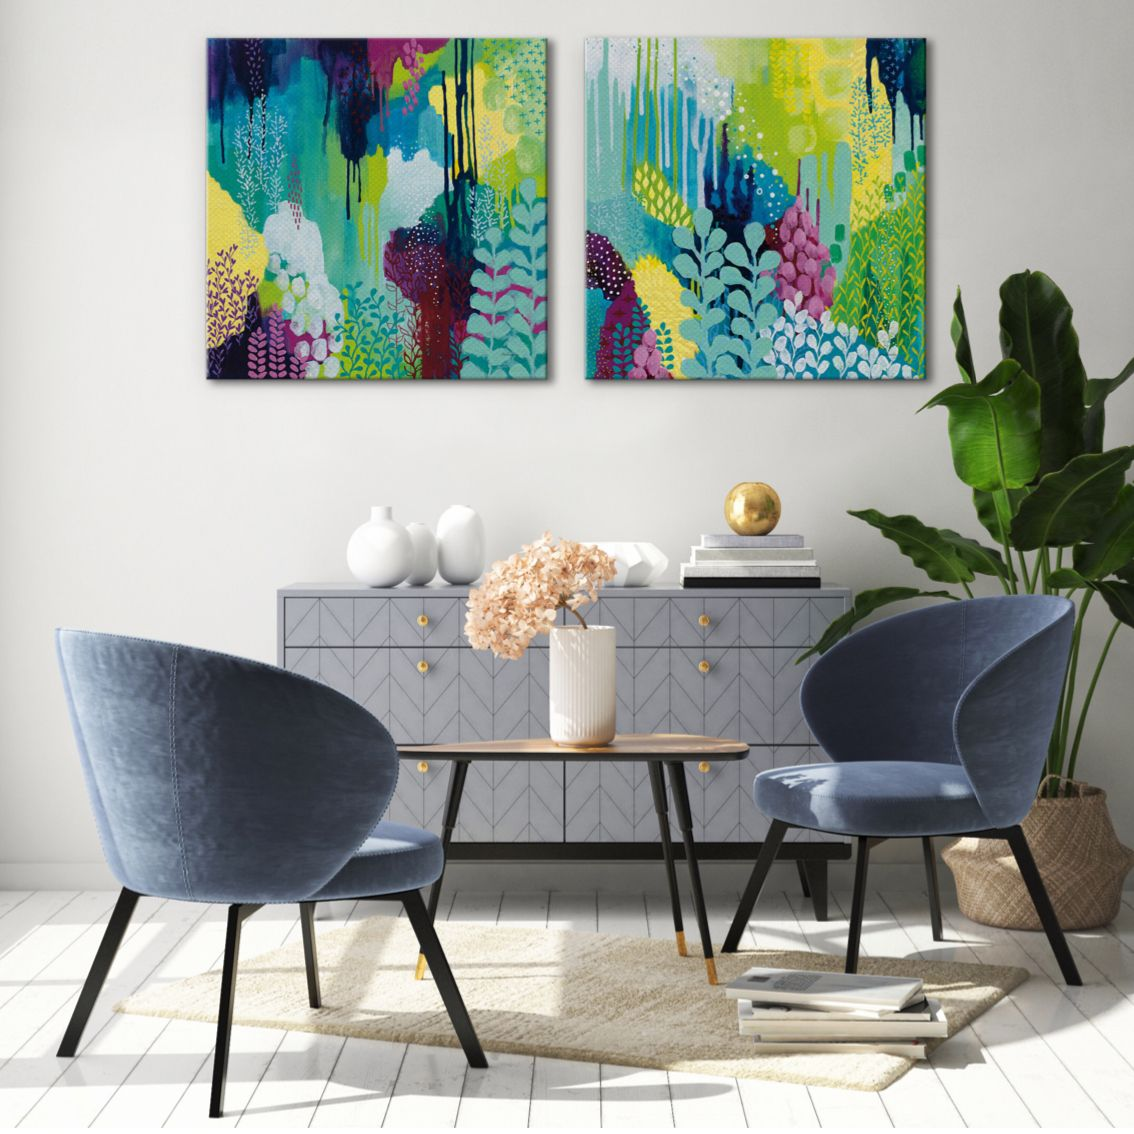 Pop Of Color Art For Your Walls Wall Decor Interiors Large Art Prints Landscape Wall Art Blue Abstract Art